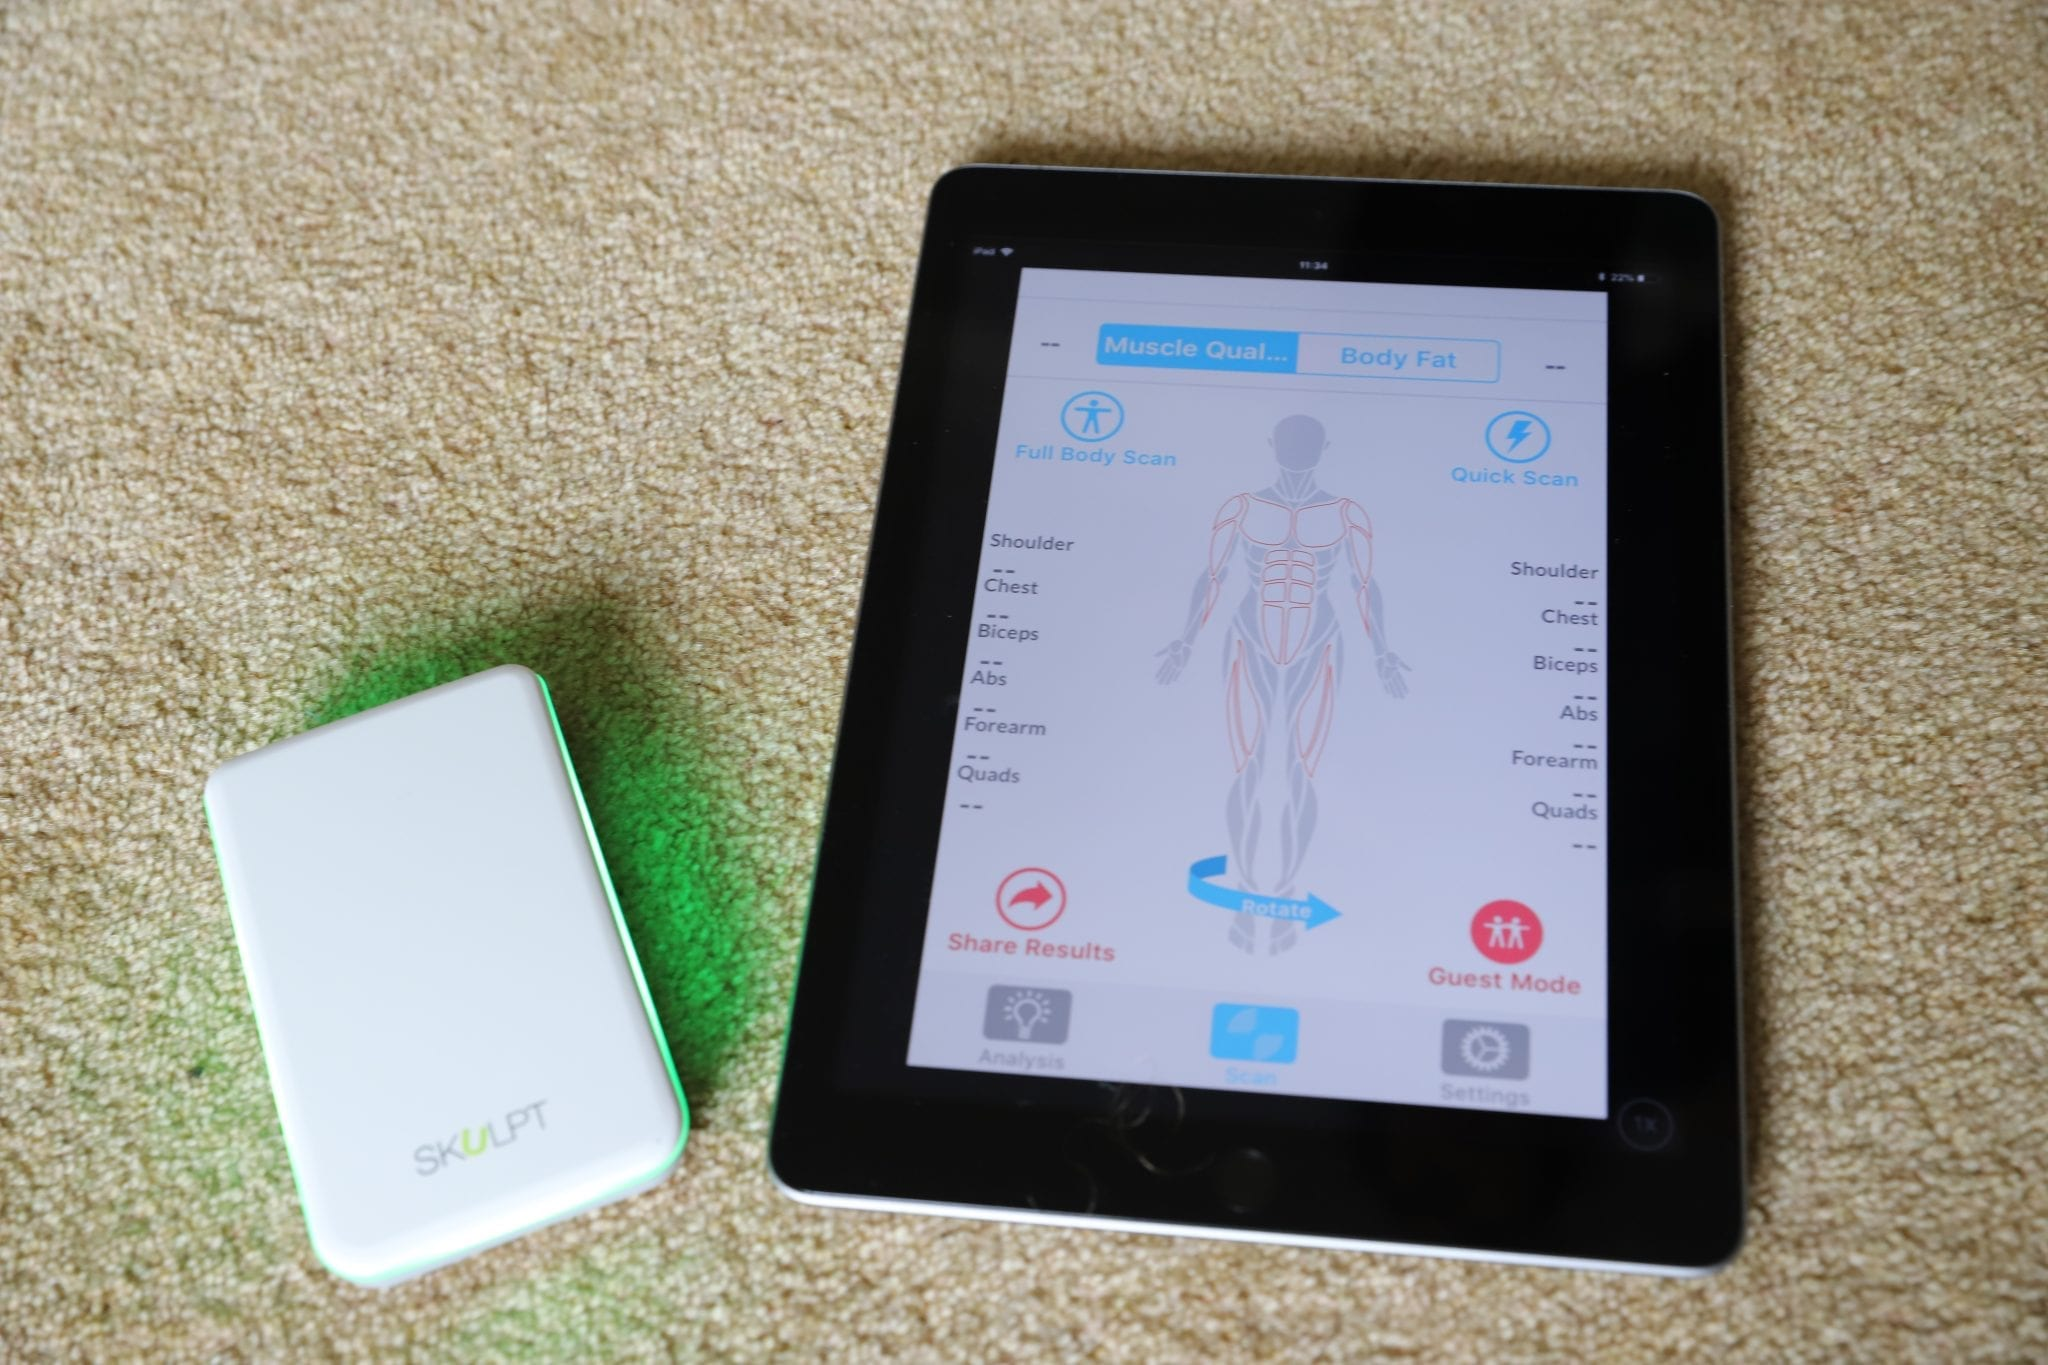 Muscle mass and fat loss weight loss app